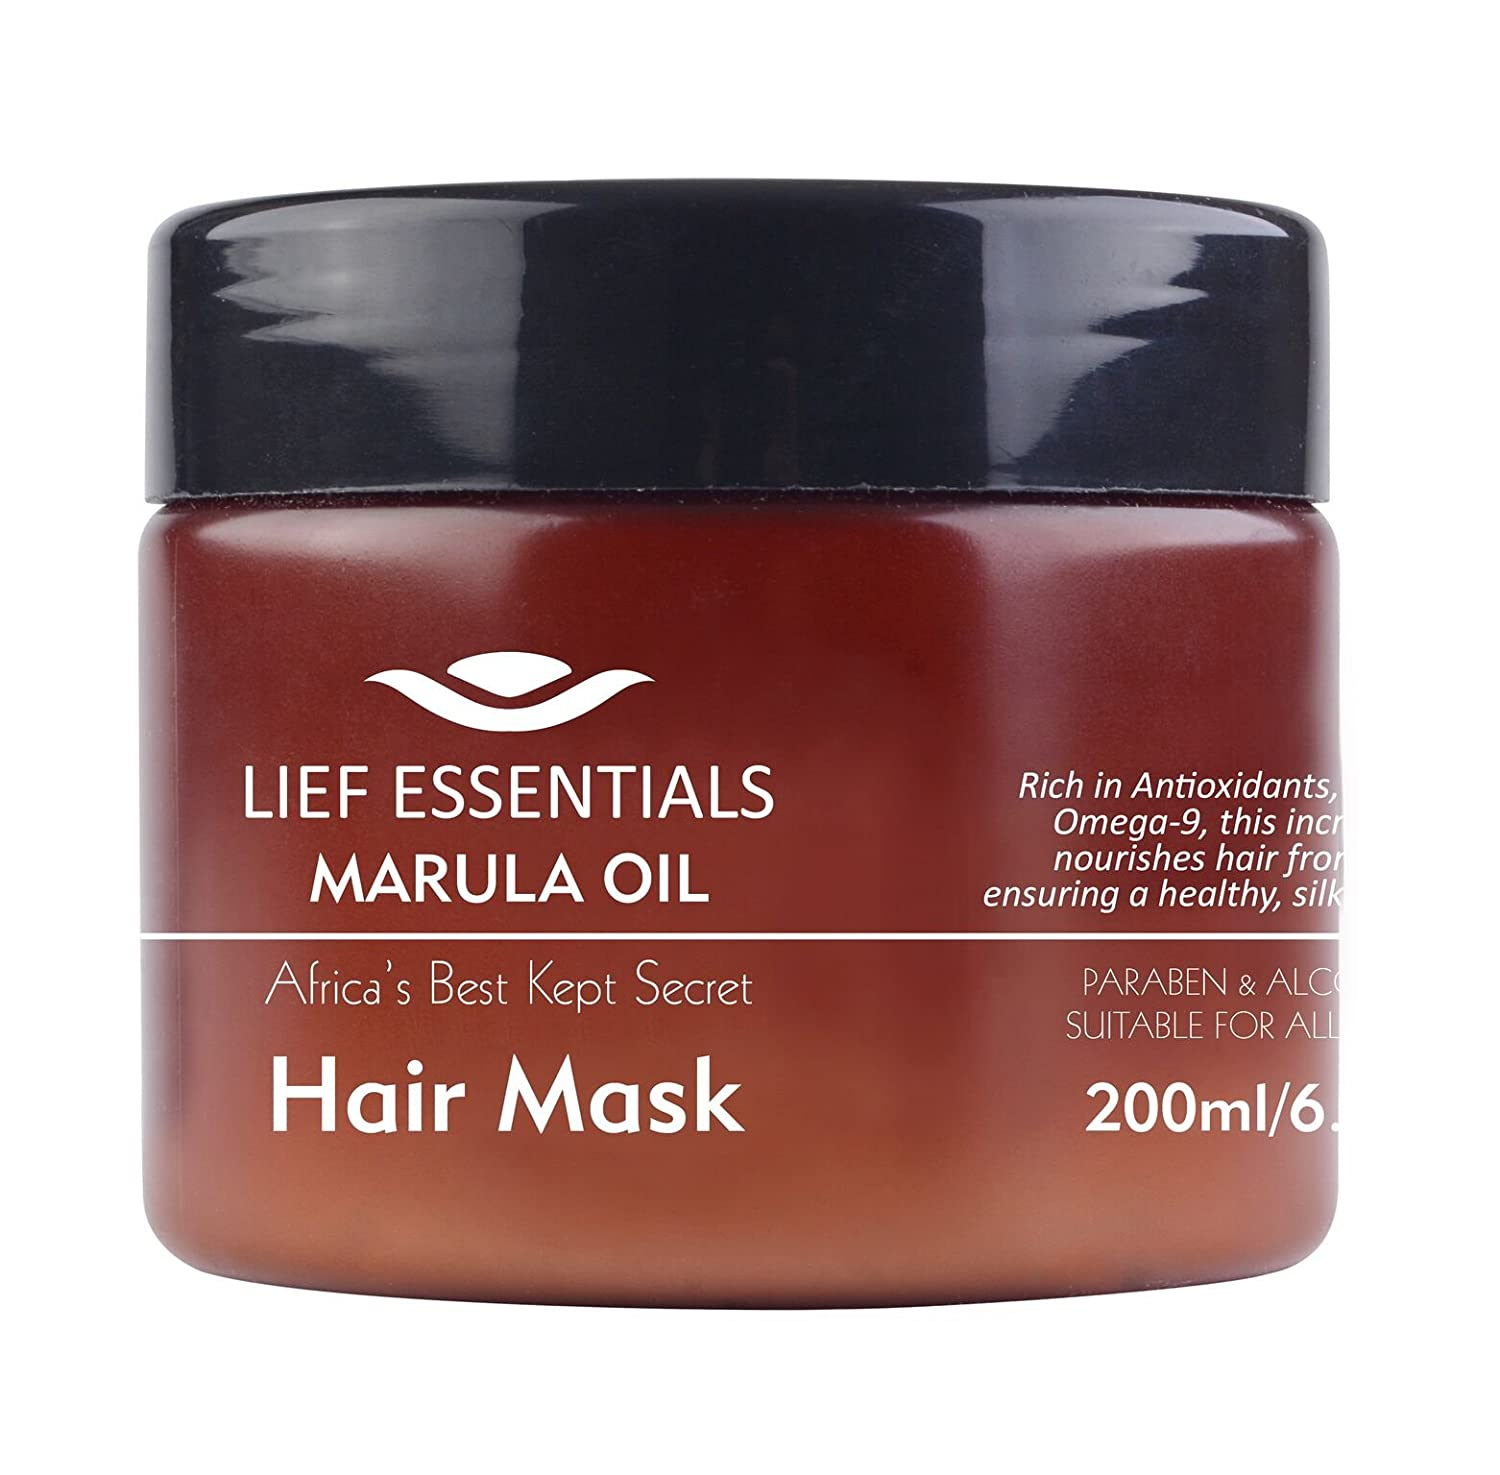 LIEF ESSENTIALS Hair Mask with Pure Organic African Marula Oil Suitable For All Hair Types Cruelty-Free 200ml MOHMASK200